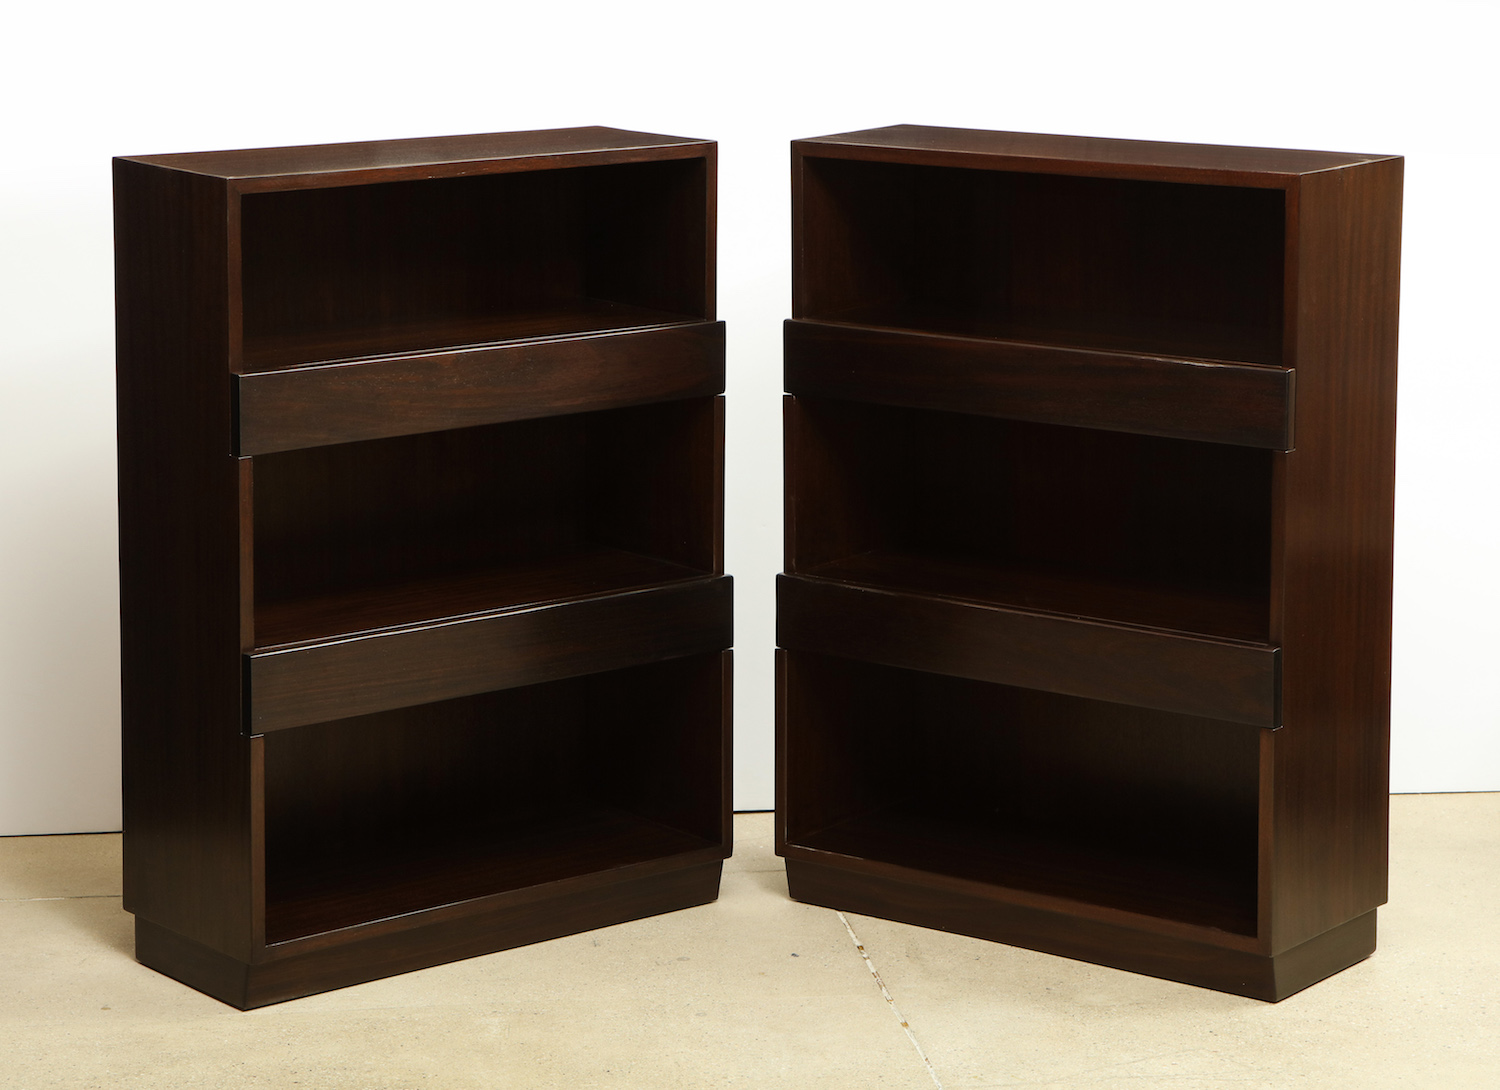 wormley dunbar pair of bookcases 5.jpg